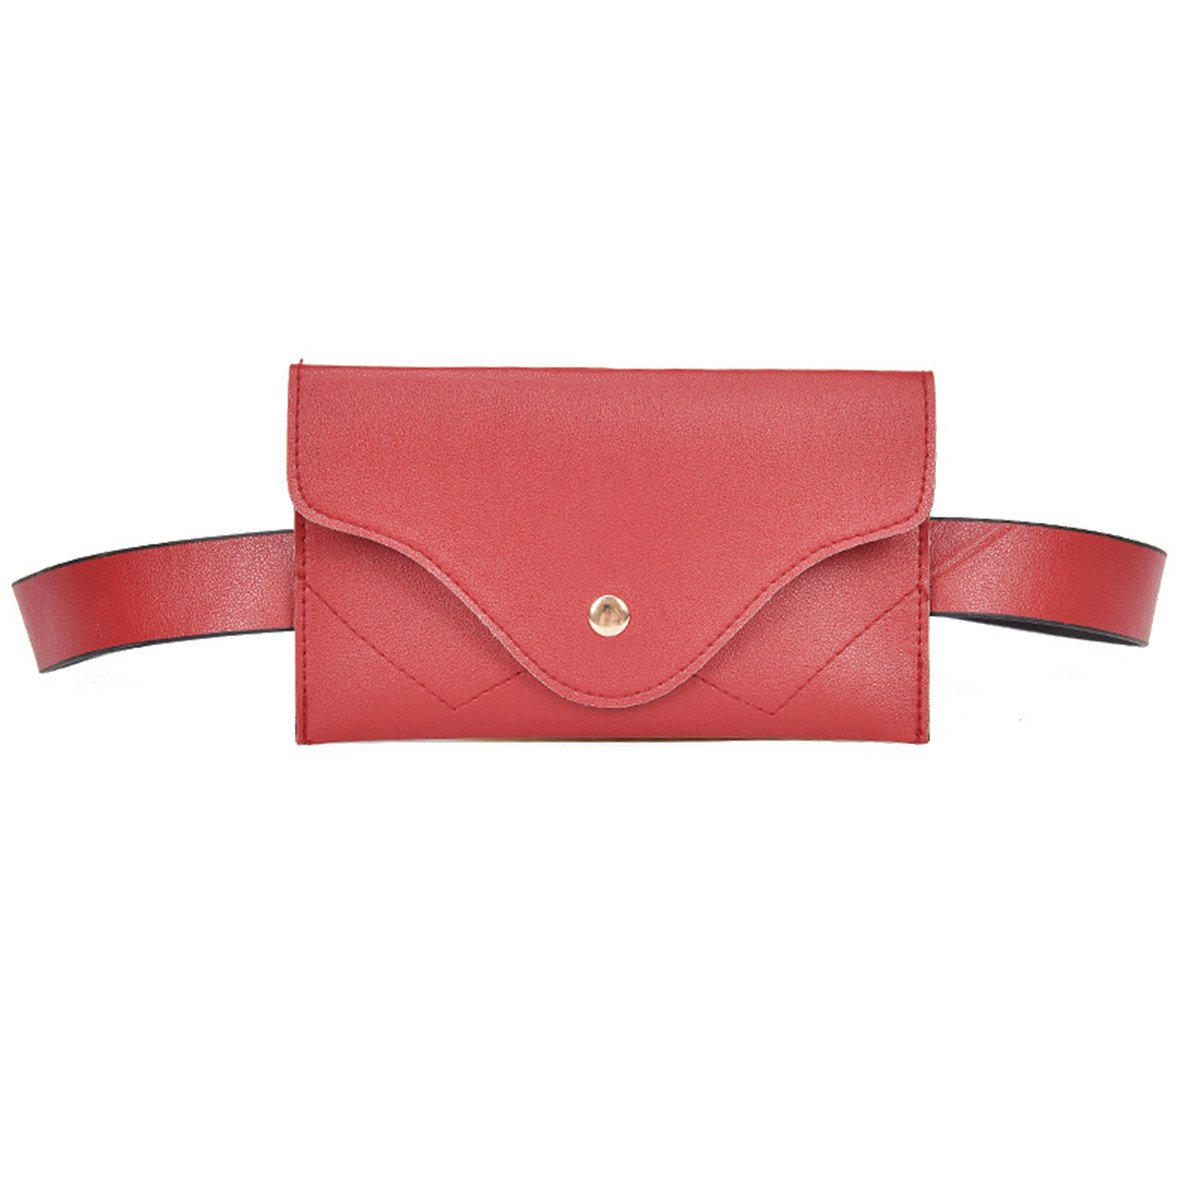 ECYC Women Fashion Waist Bag Simple Envelope Soft PU Leather Fanny Pack, Winered